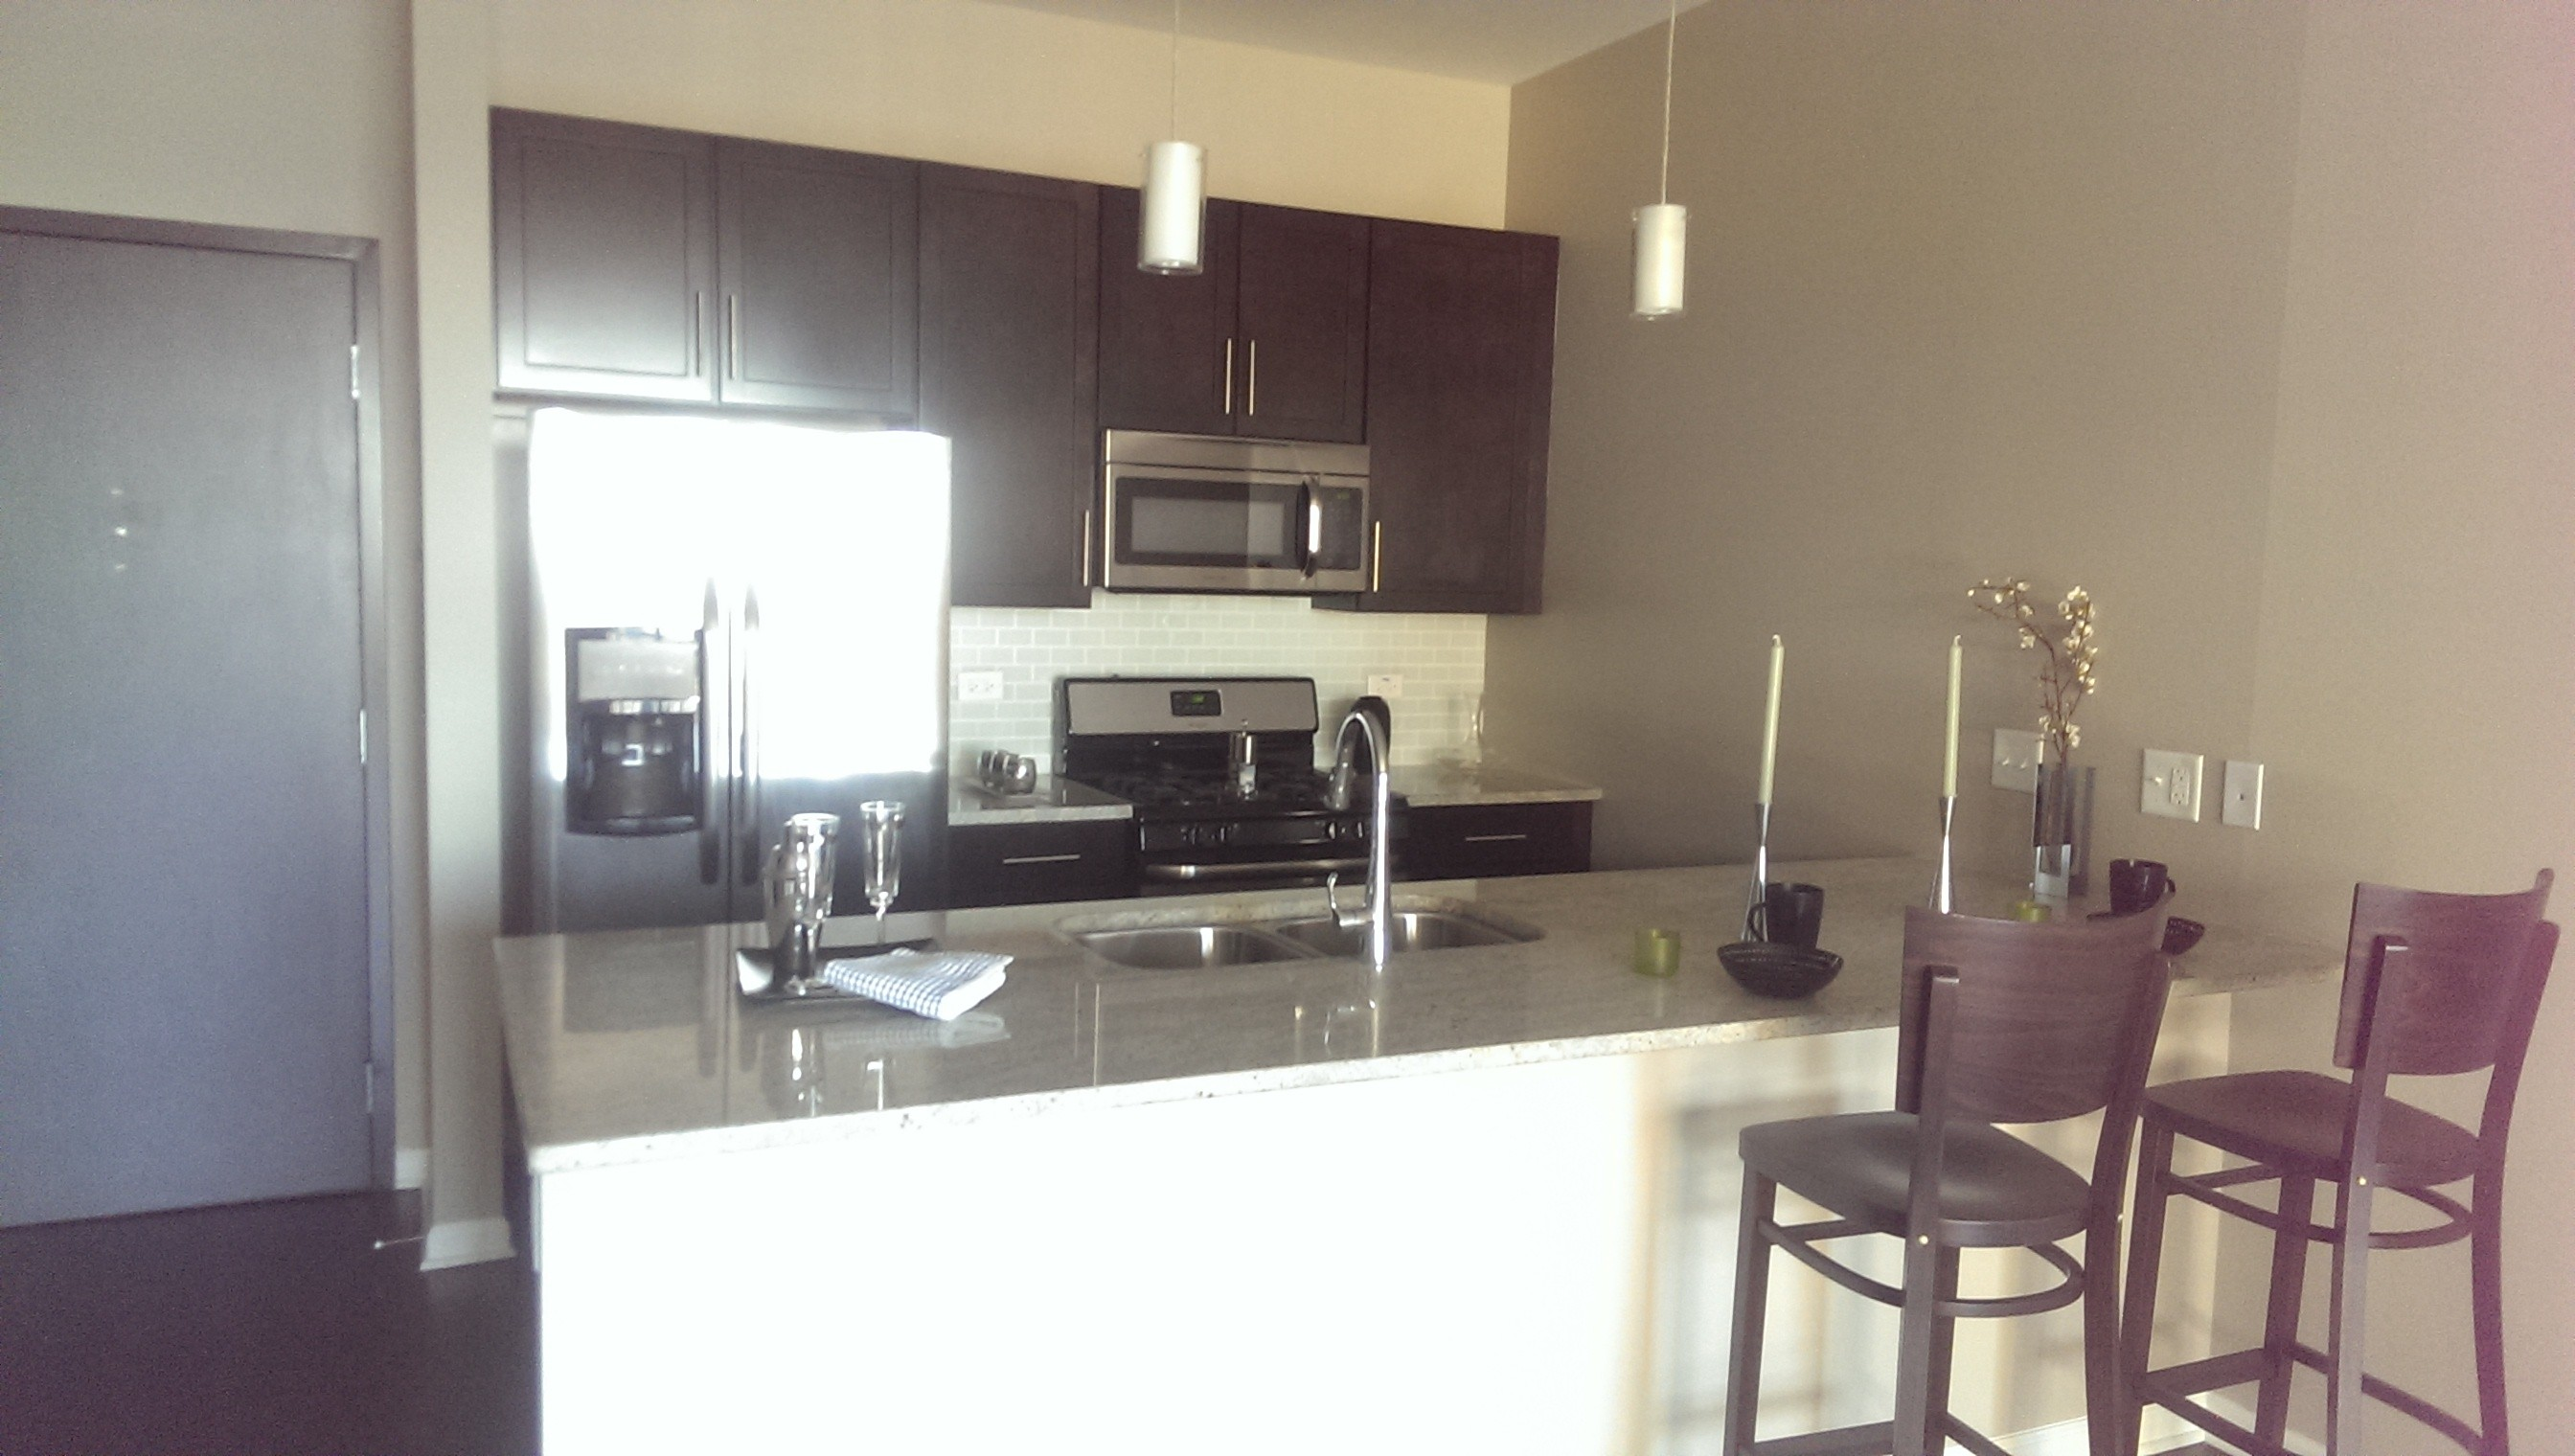 2300 S Michigan Ave 513 Chicago Il 60616 2 Bedroom Apartment For Rent For 2 505 Month Zumper